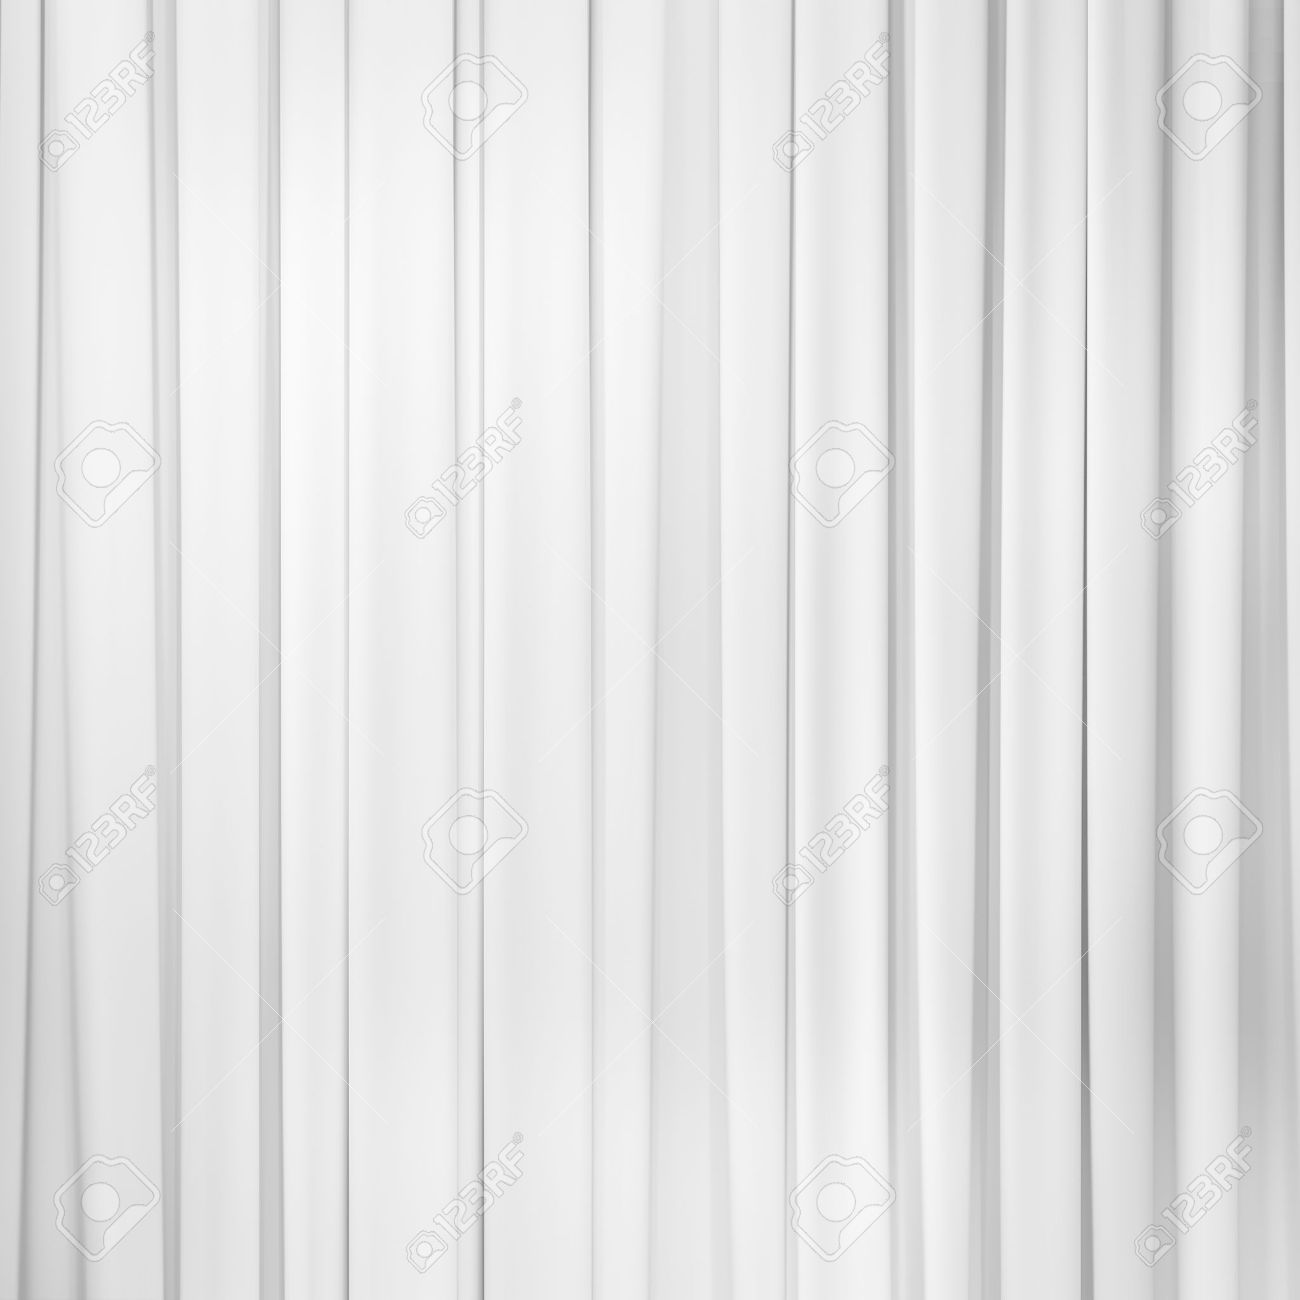 Royalty free or white curtain background drapes royalty free stock - White Curtain Or Drapes Background Stock Photo 27367695